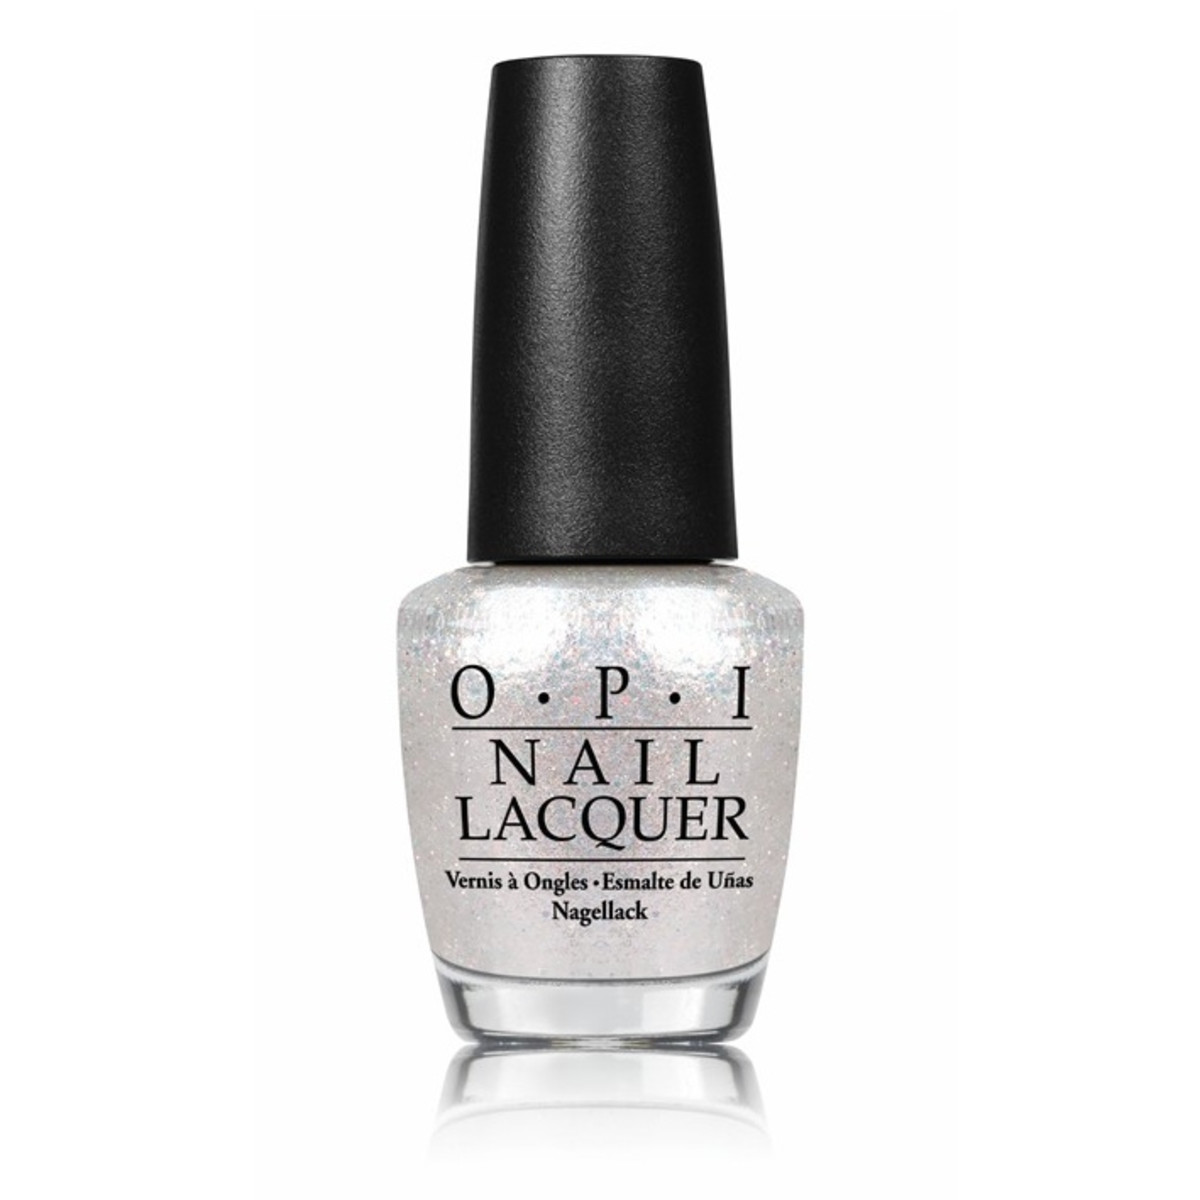 OPI Make Light of the Situation Soft Shades 2015